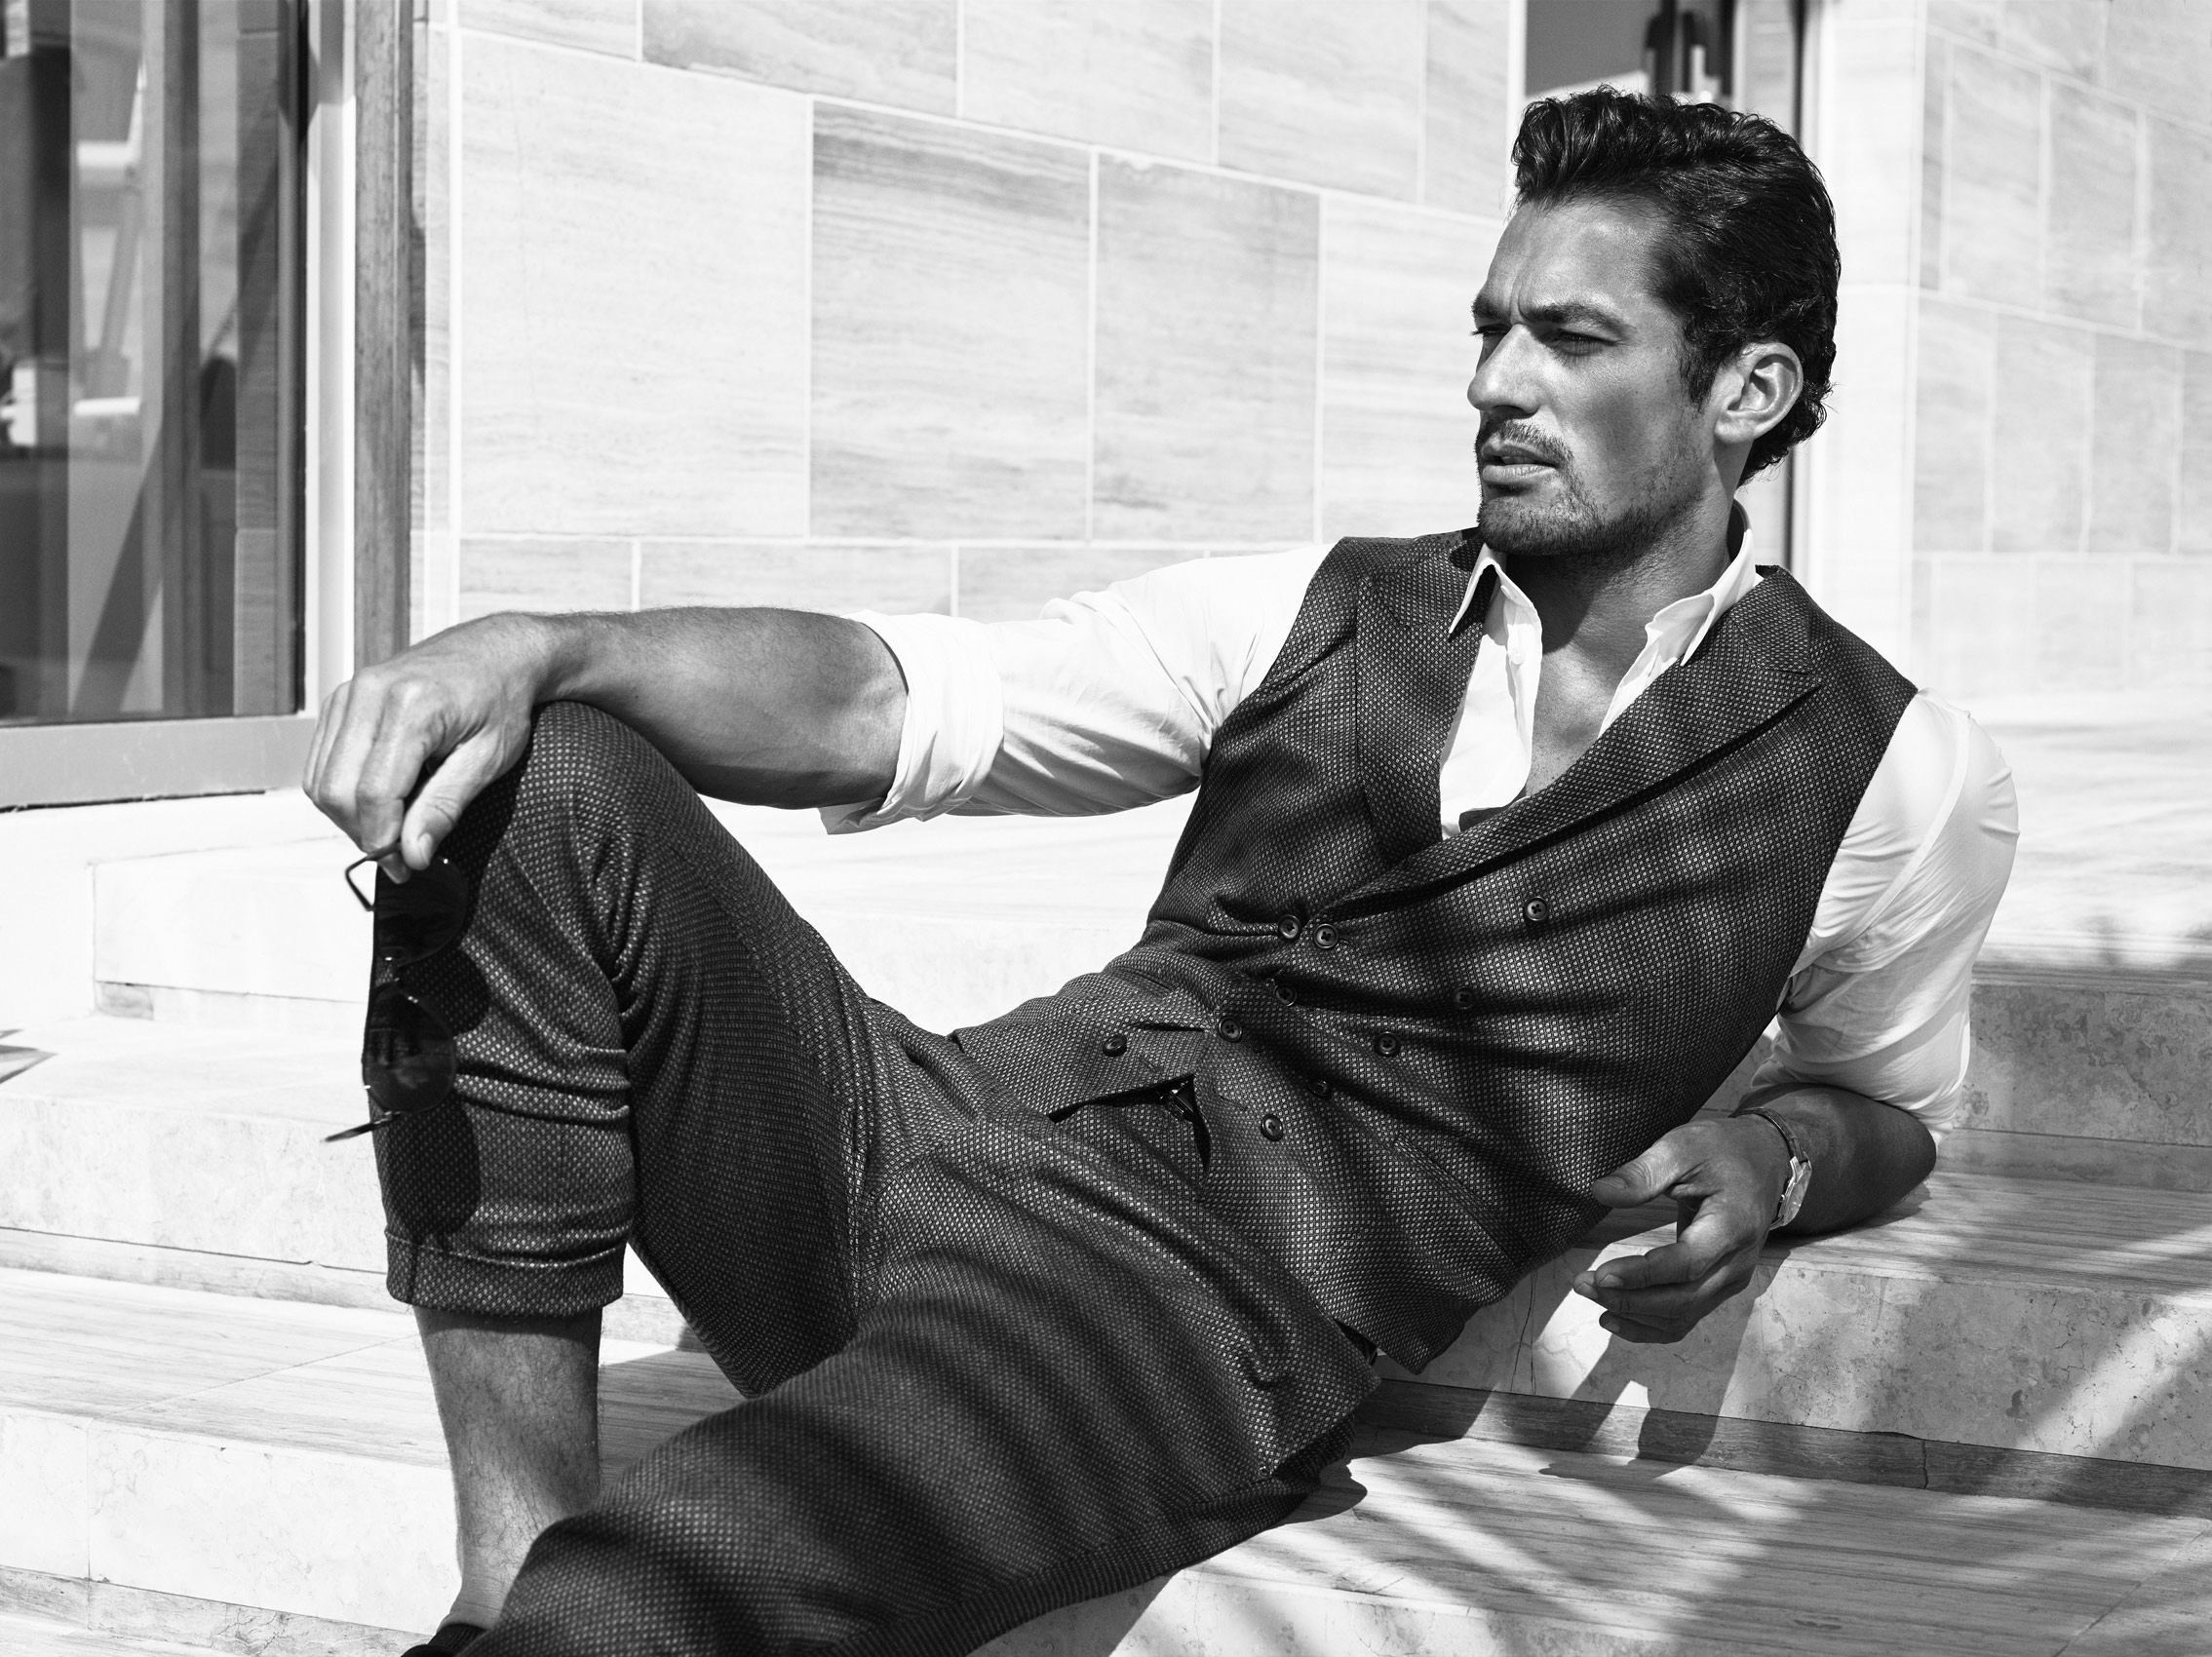 20150711_JR_DavidGandy_0191B_bw_flat_web